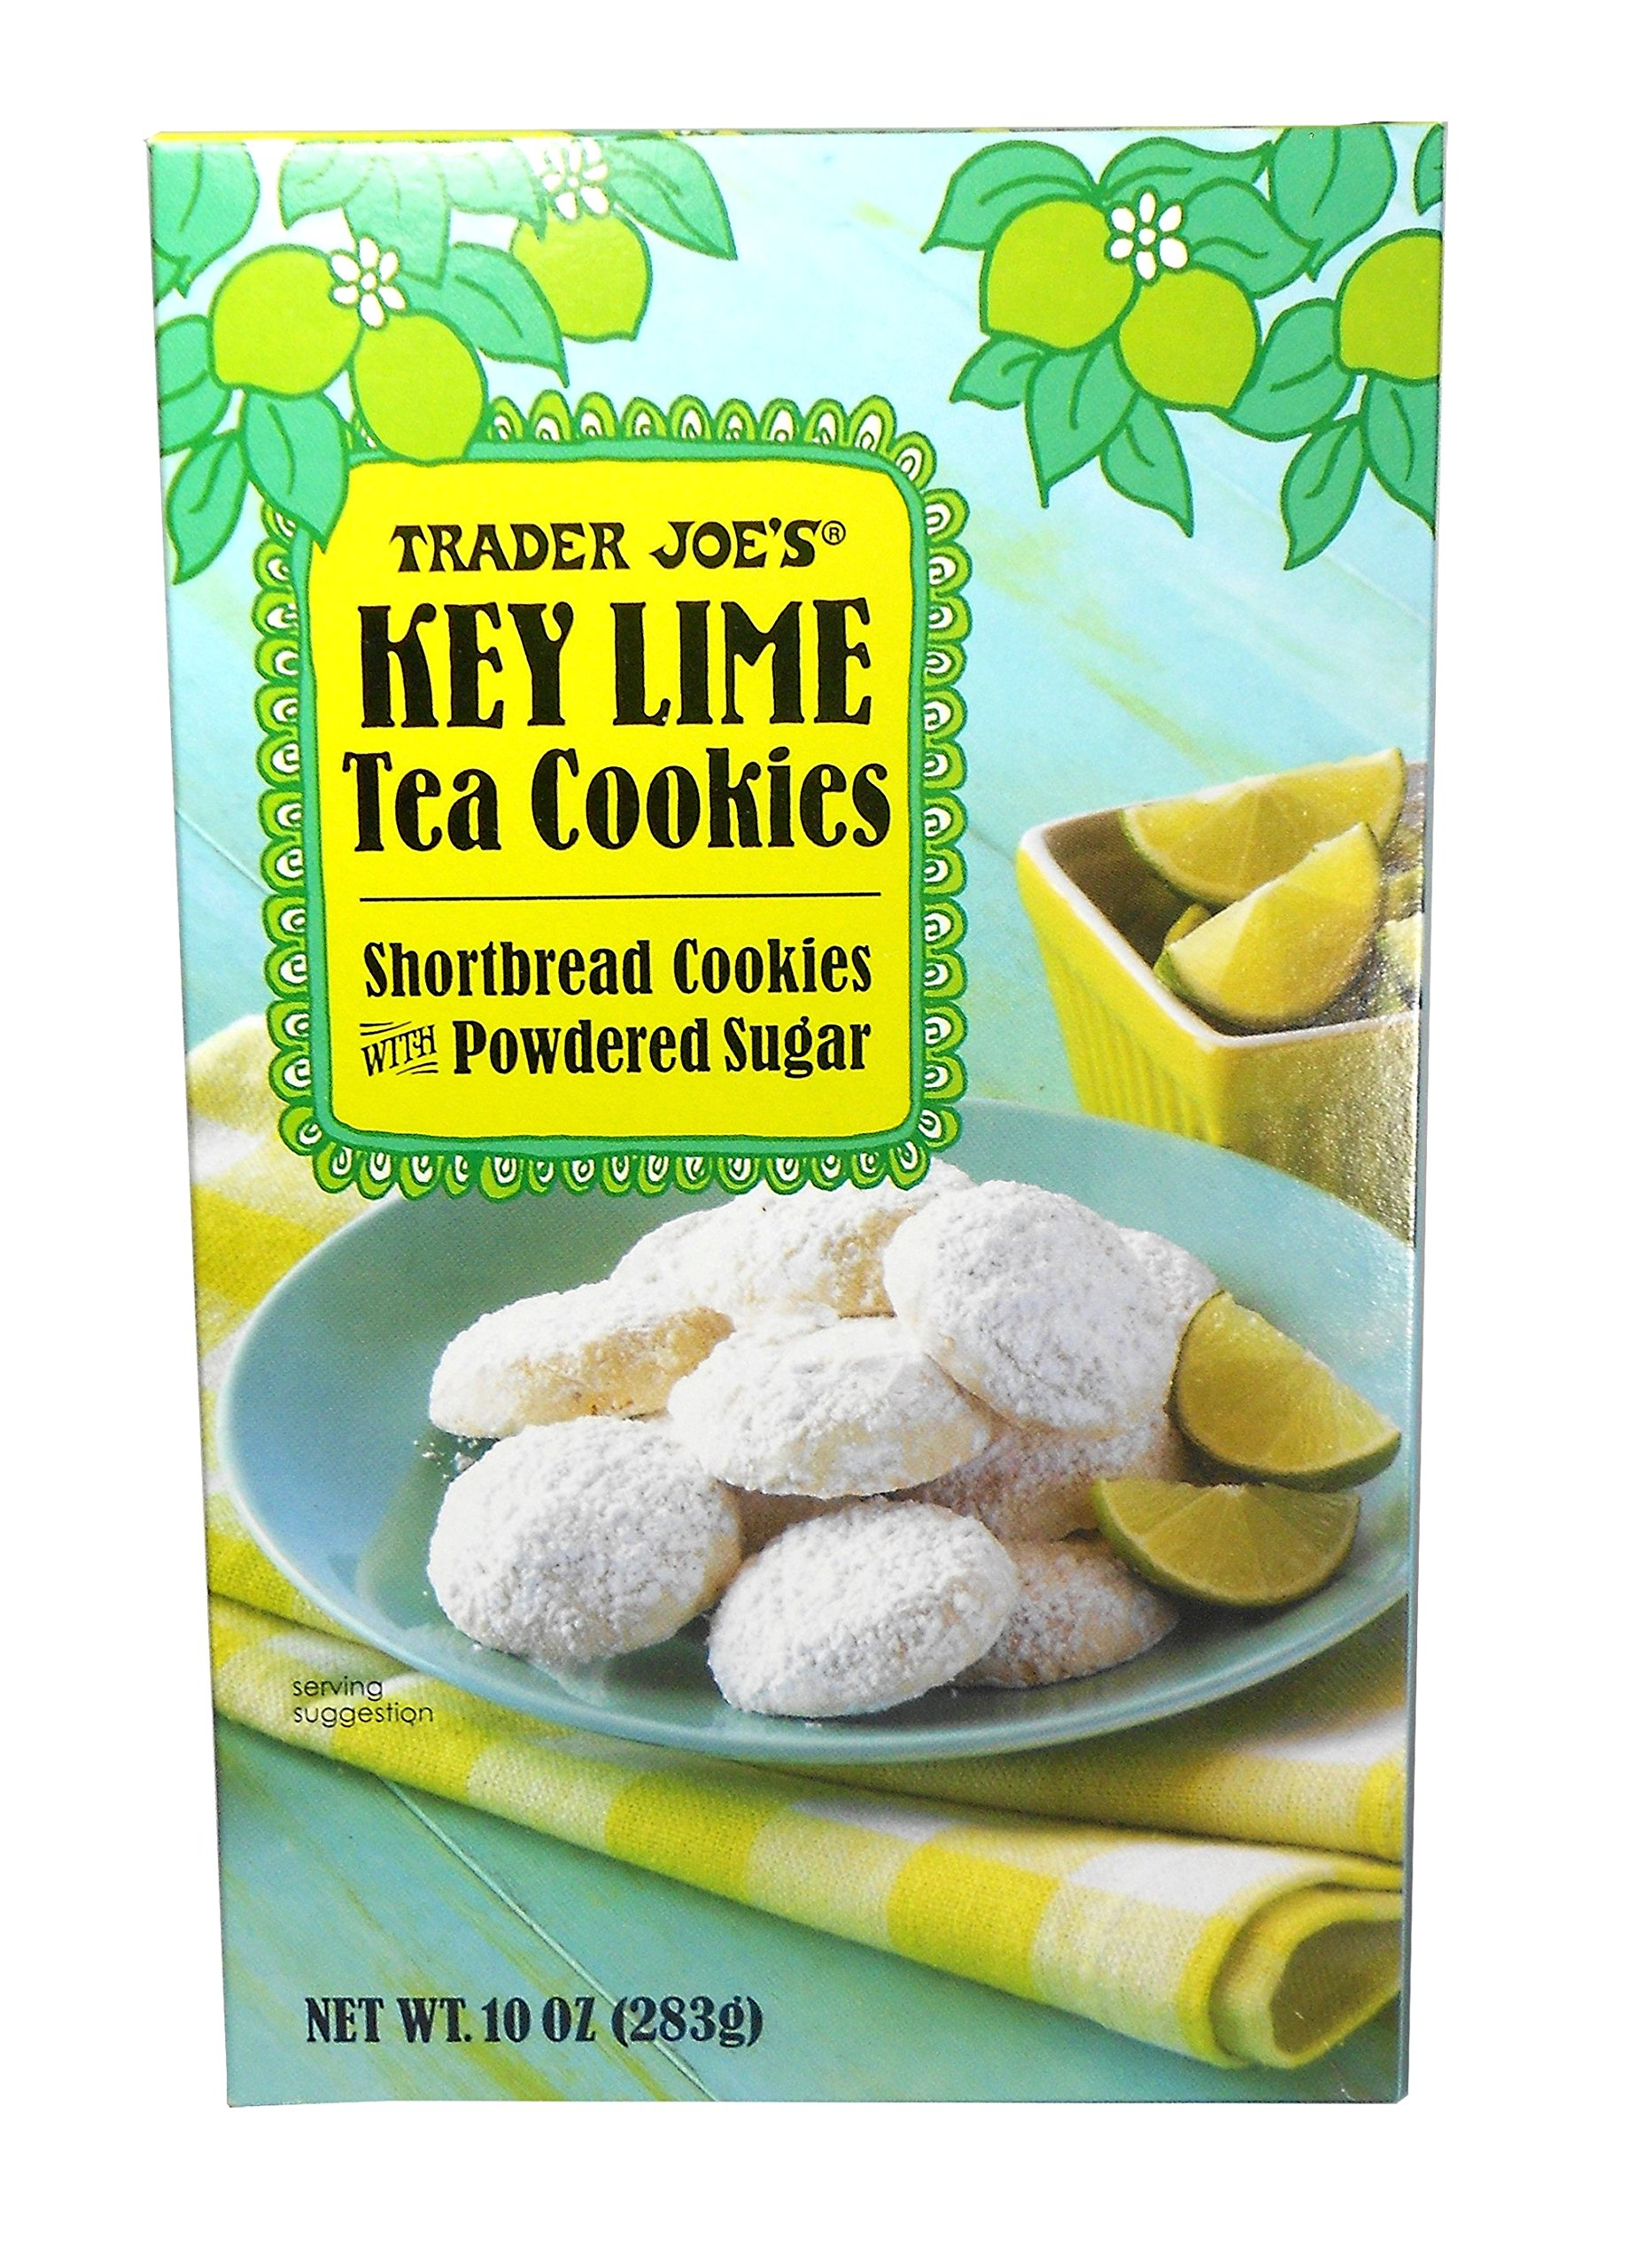 Trader Joe's Key Lime Shortbread Tea Cookies with Powdered Sugar 10 Oz.